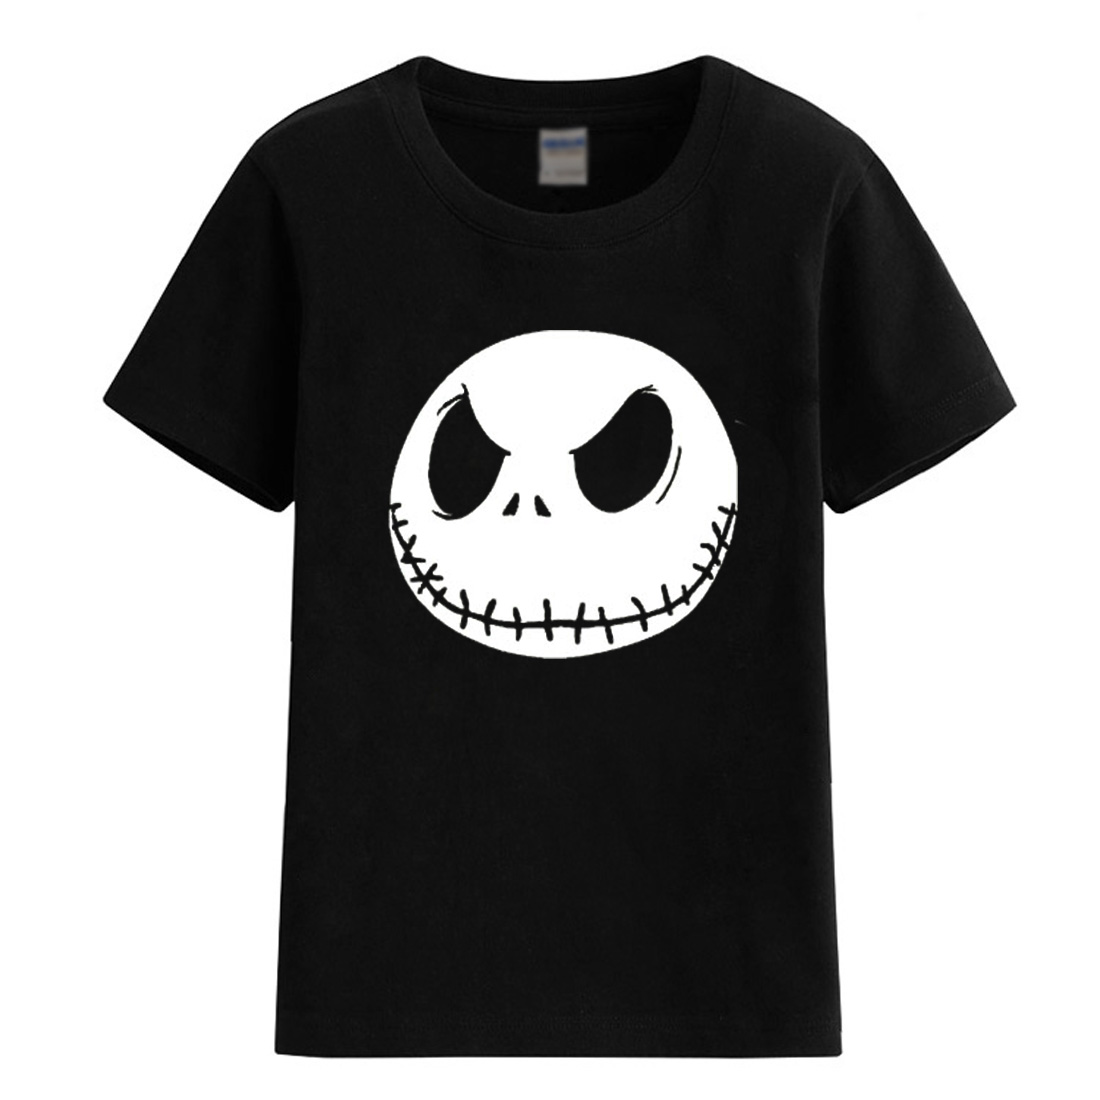 2018 summer T-shirts Jack Skellington Evil Face character pattern T-shirt for girl boy kids clothes fashion cool brand t shirt fashion easy matched stripe pattern shirt